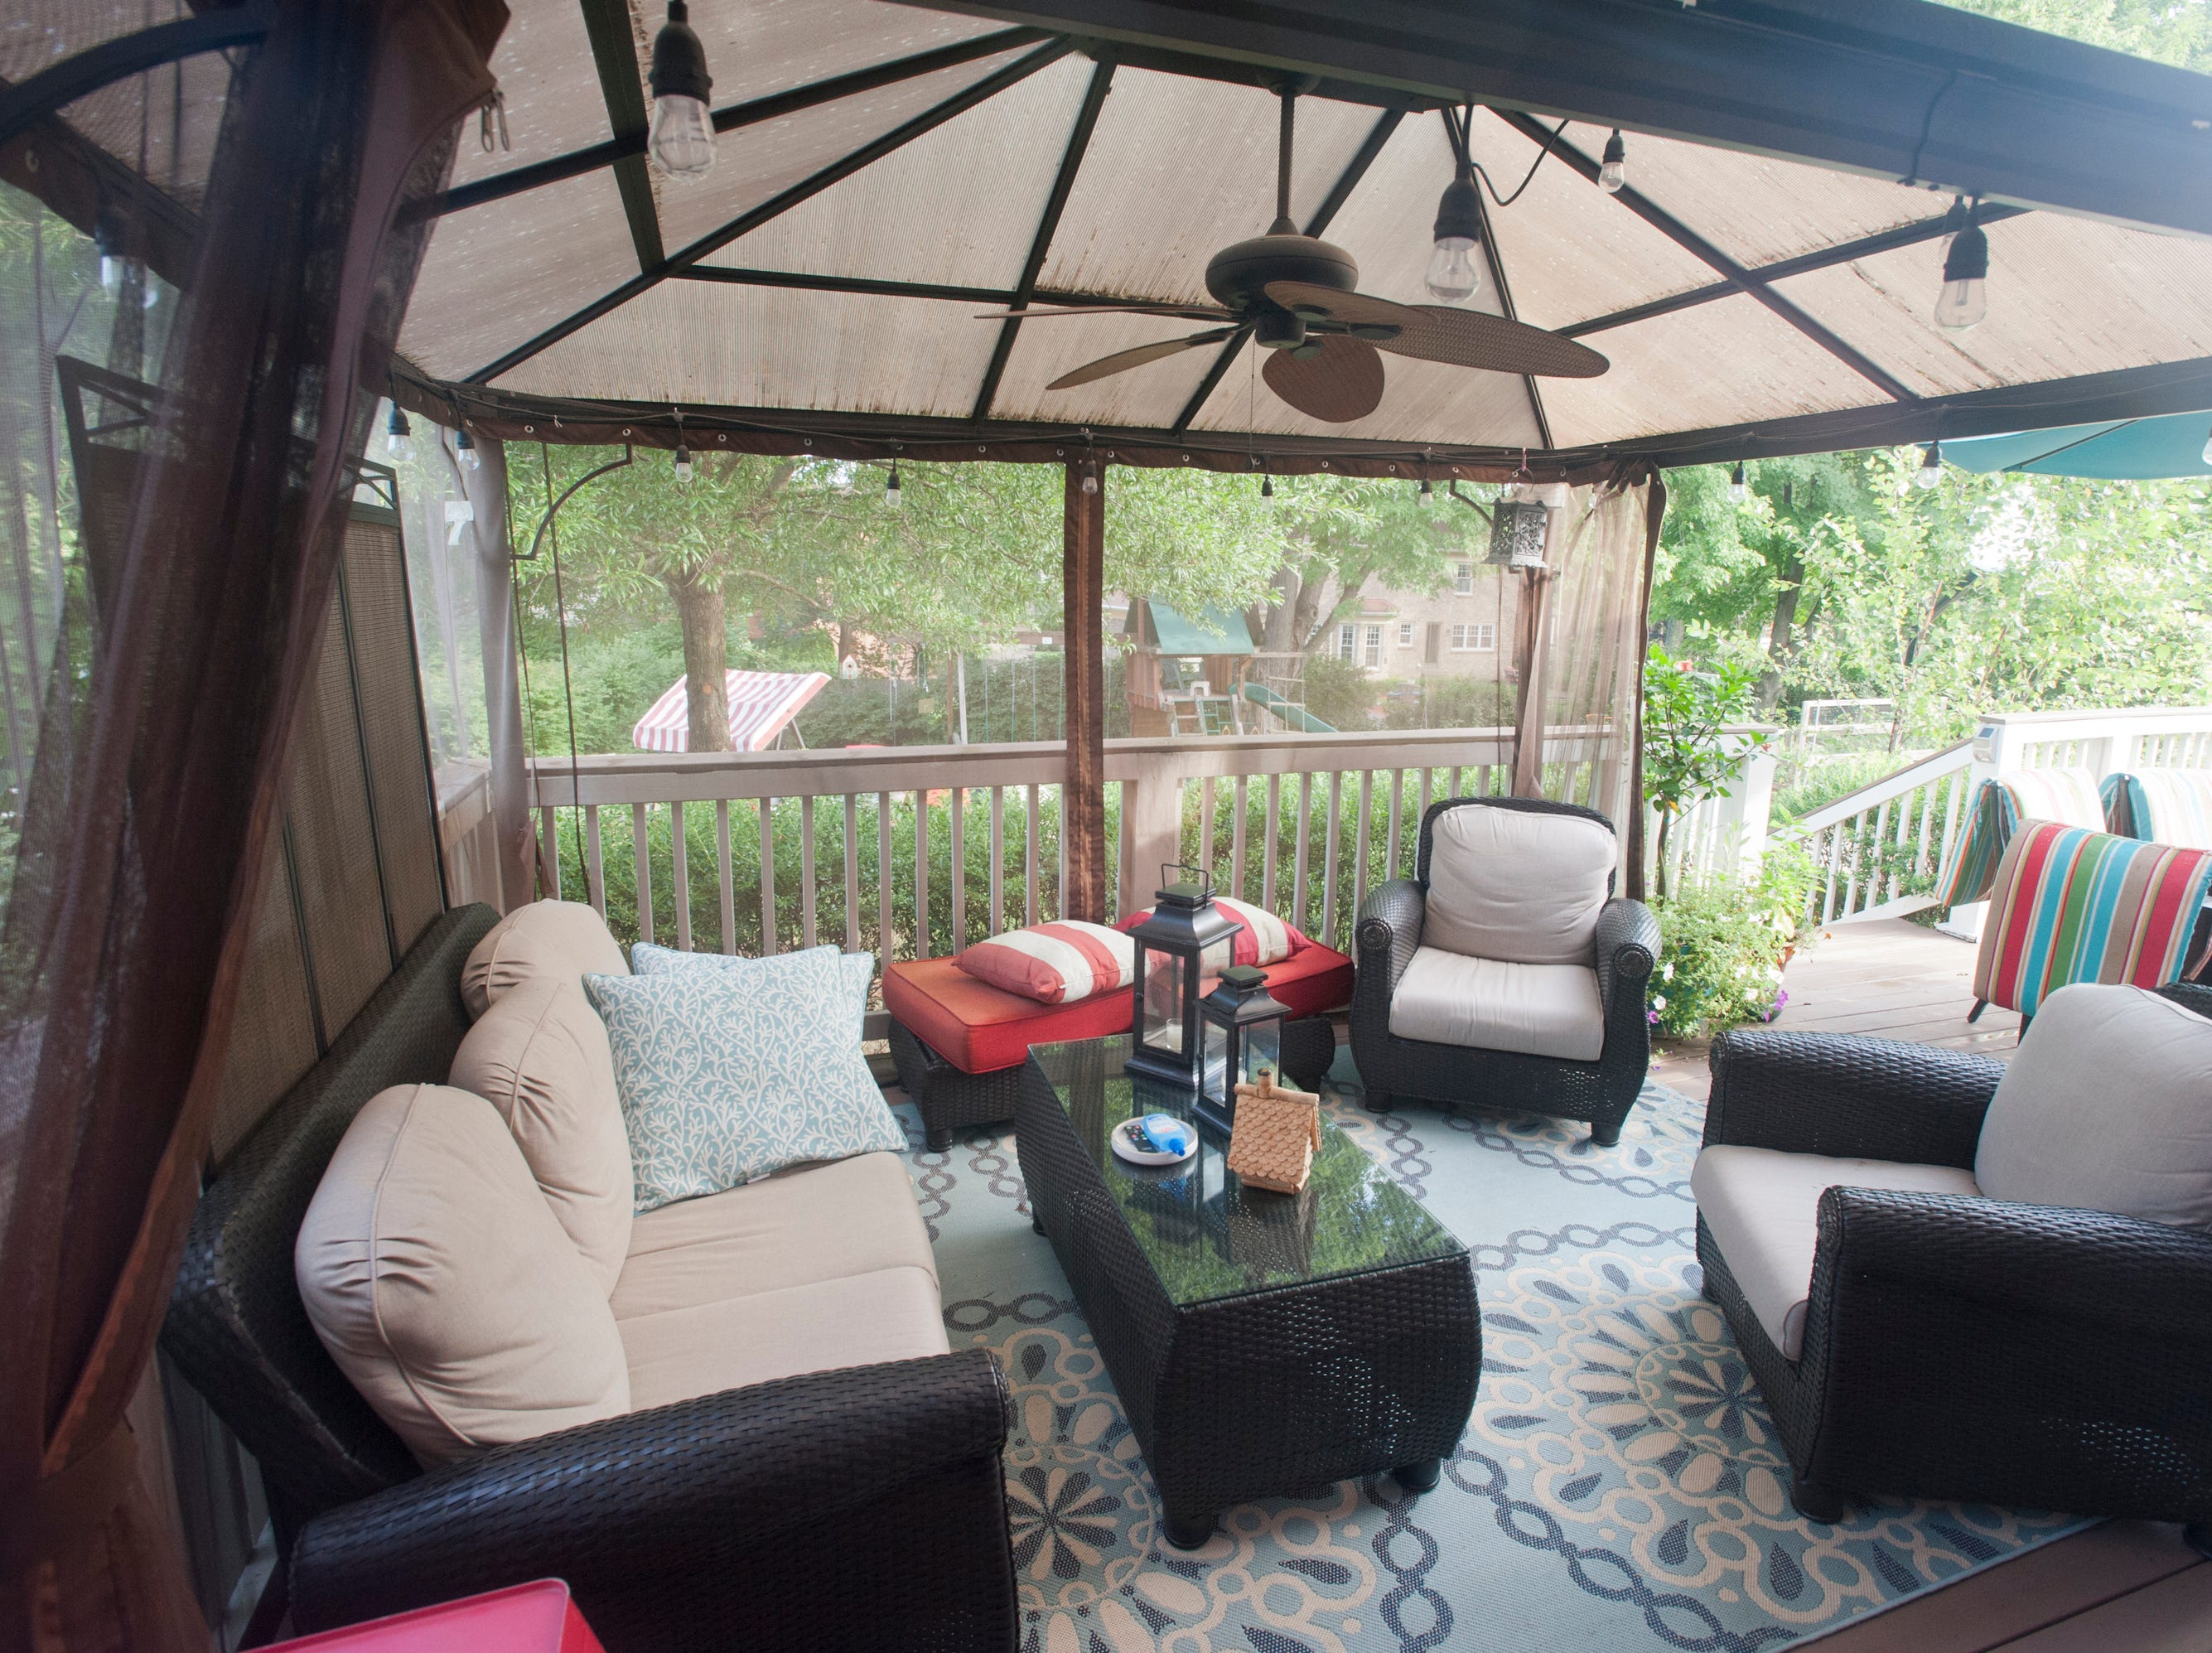 The screened-in back deck at the home of Jean Hodges.